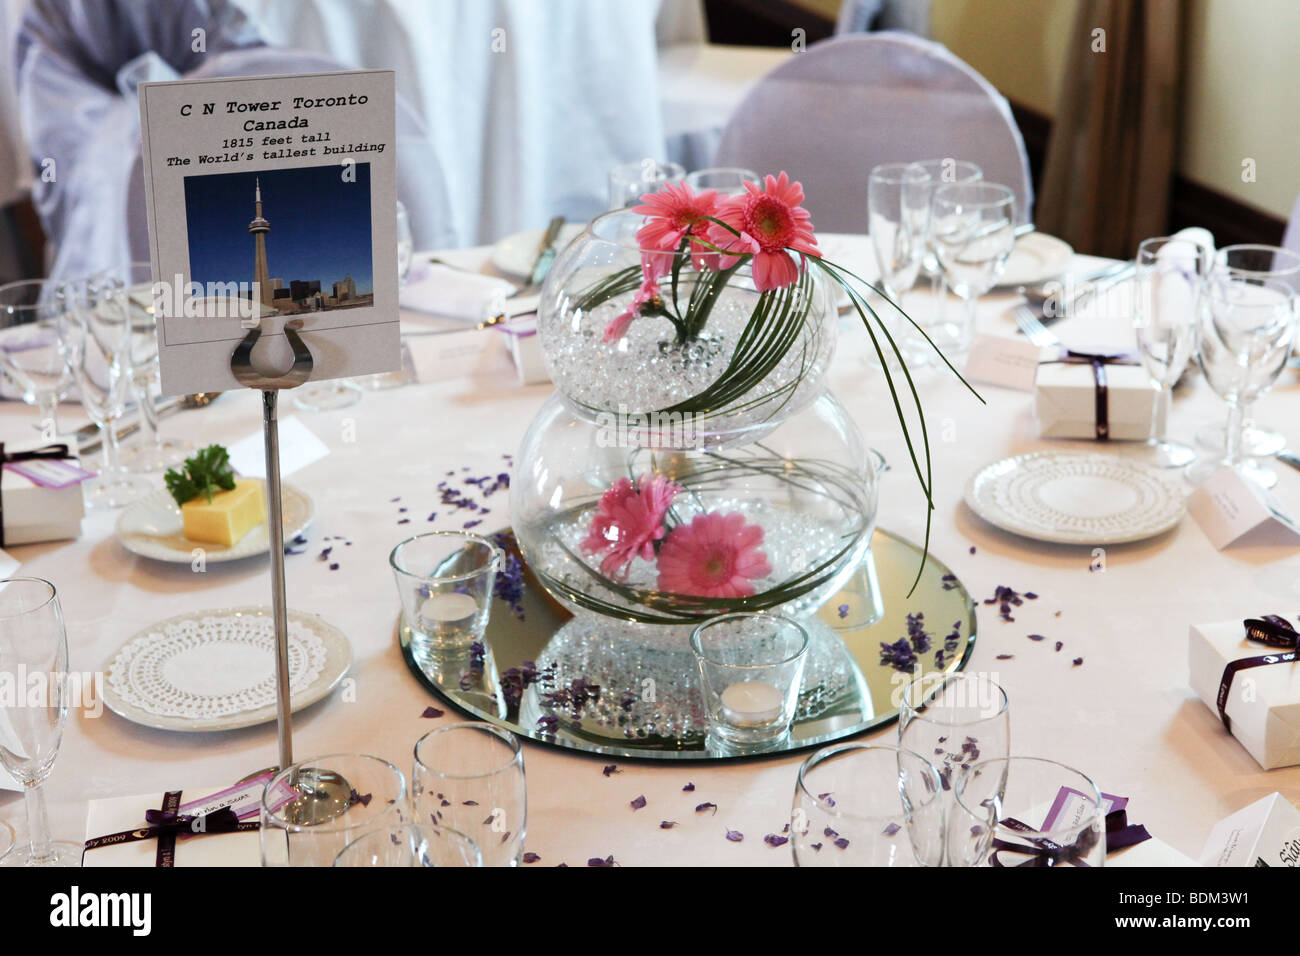 Wedding breakfast reception table decorations closeup table name wedding breakfast reception table decorations closeup table name card and flowers in bowl junglespirit Images